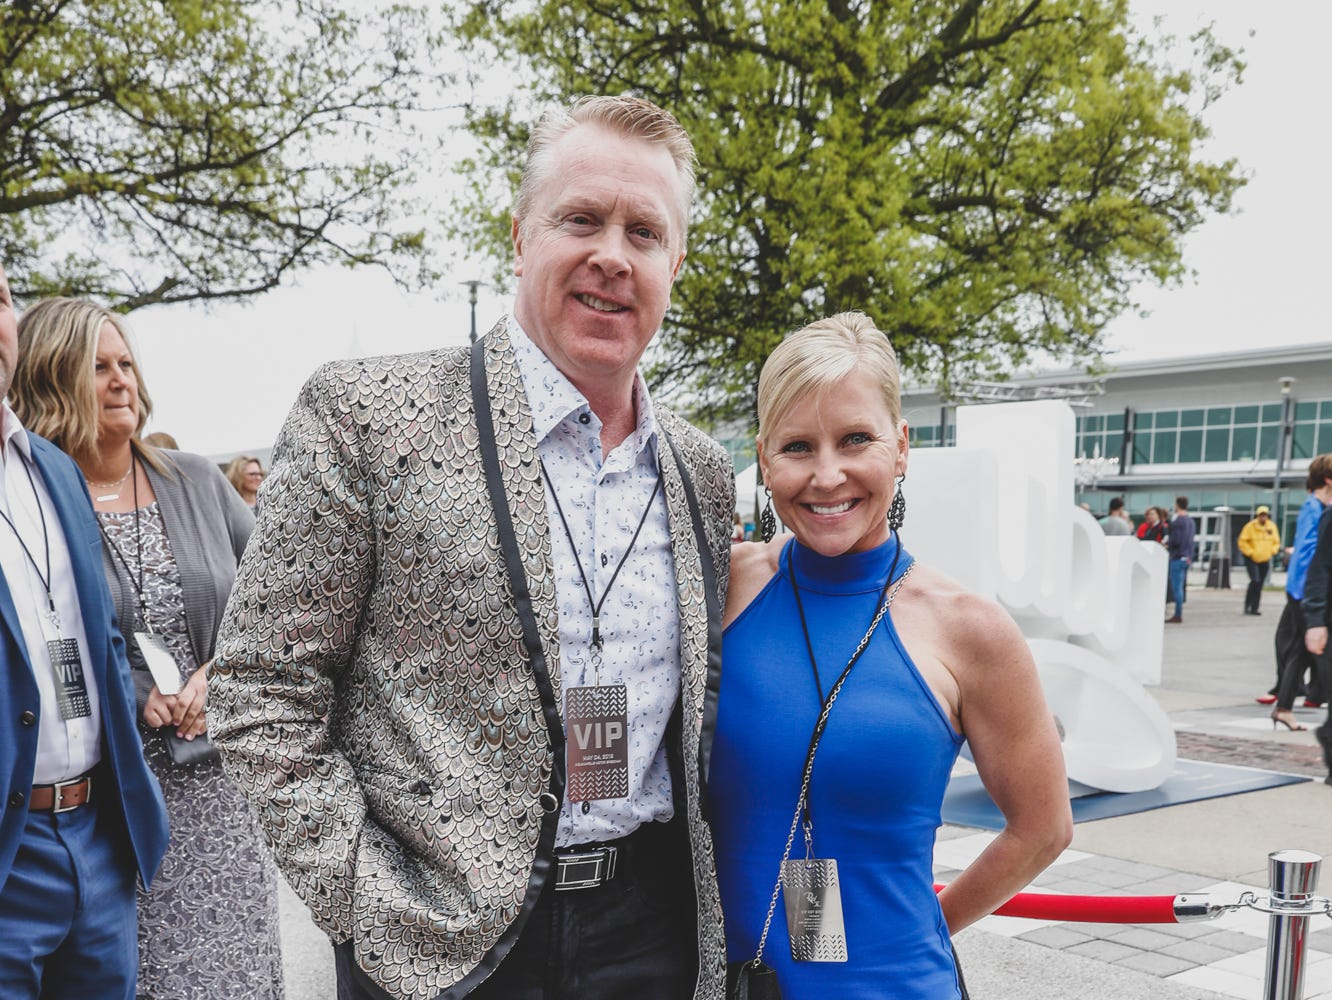 Tim and Christy Roberts IndyCar walk the red carpet at the Rev Indy fundraiser, held at the Indianapolis Motor Speedway on Saturday, May 4, 2019. Funds raised support the IU Health Foundation statewide and the IU Health Emergency Medical Center at IMS.